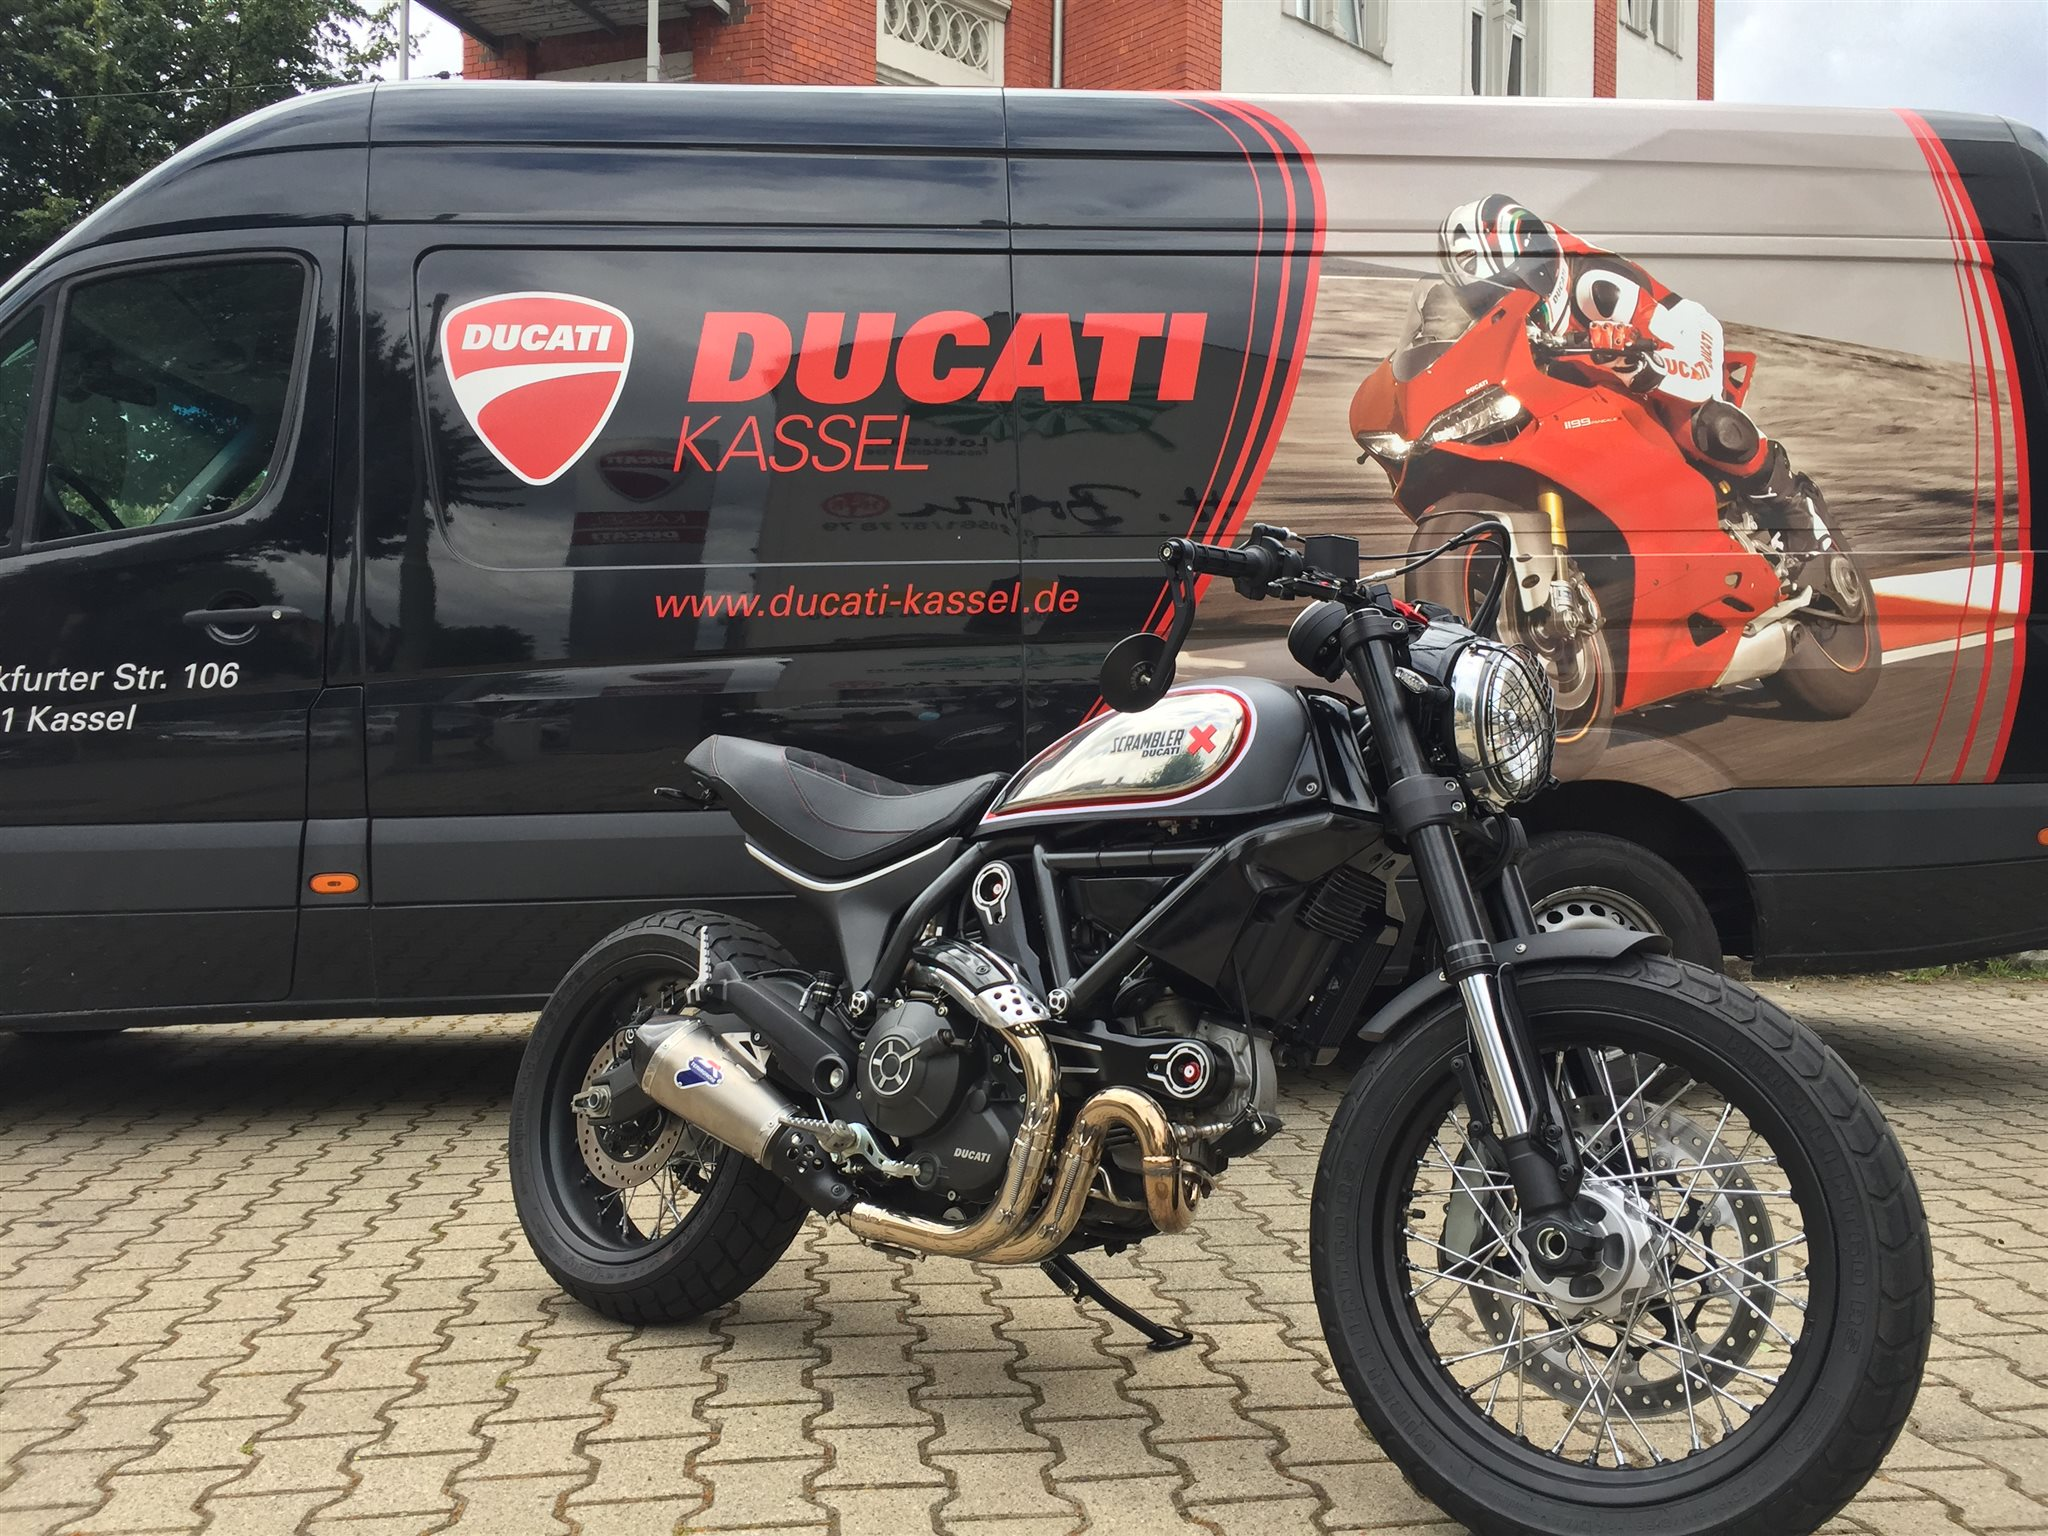 umgebautes motorrad ducati scrambler icon von ducati. Black Bedroom Furniture Sets. Home Design Ideas